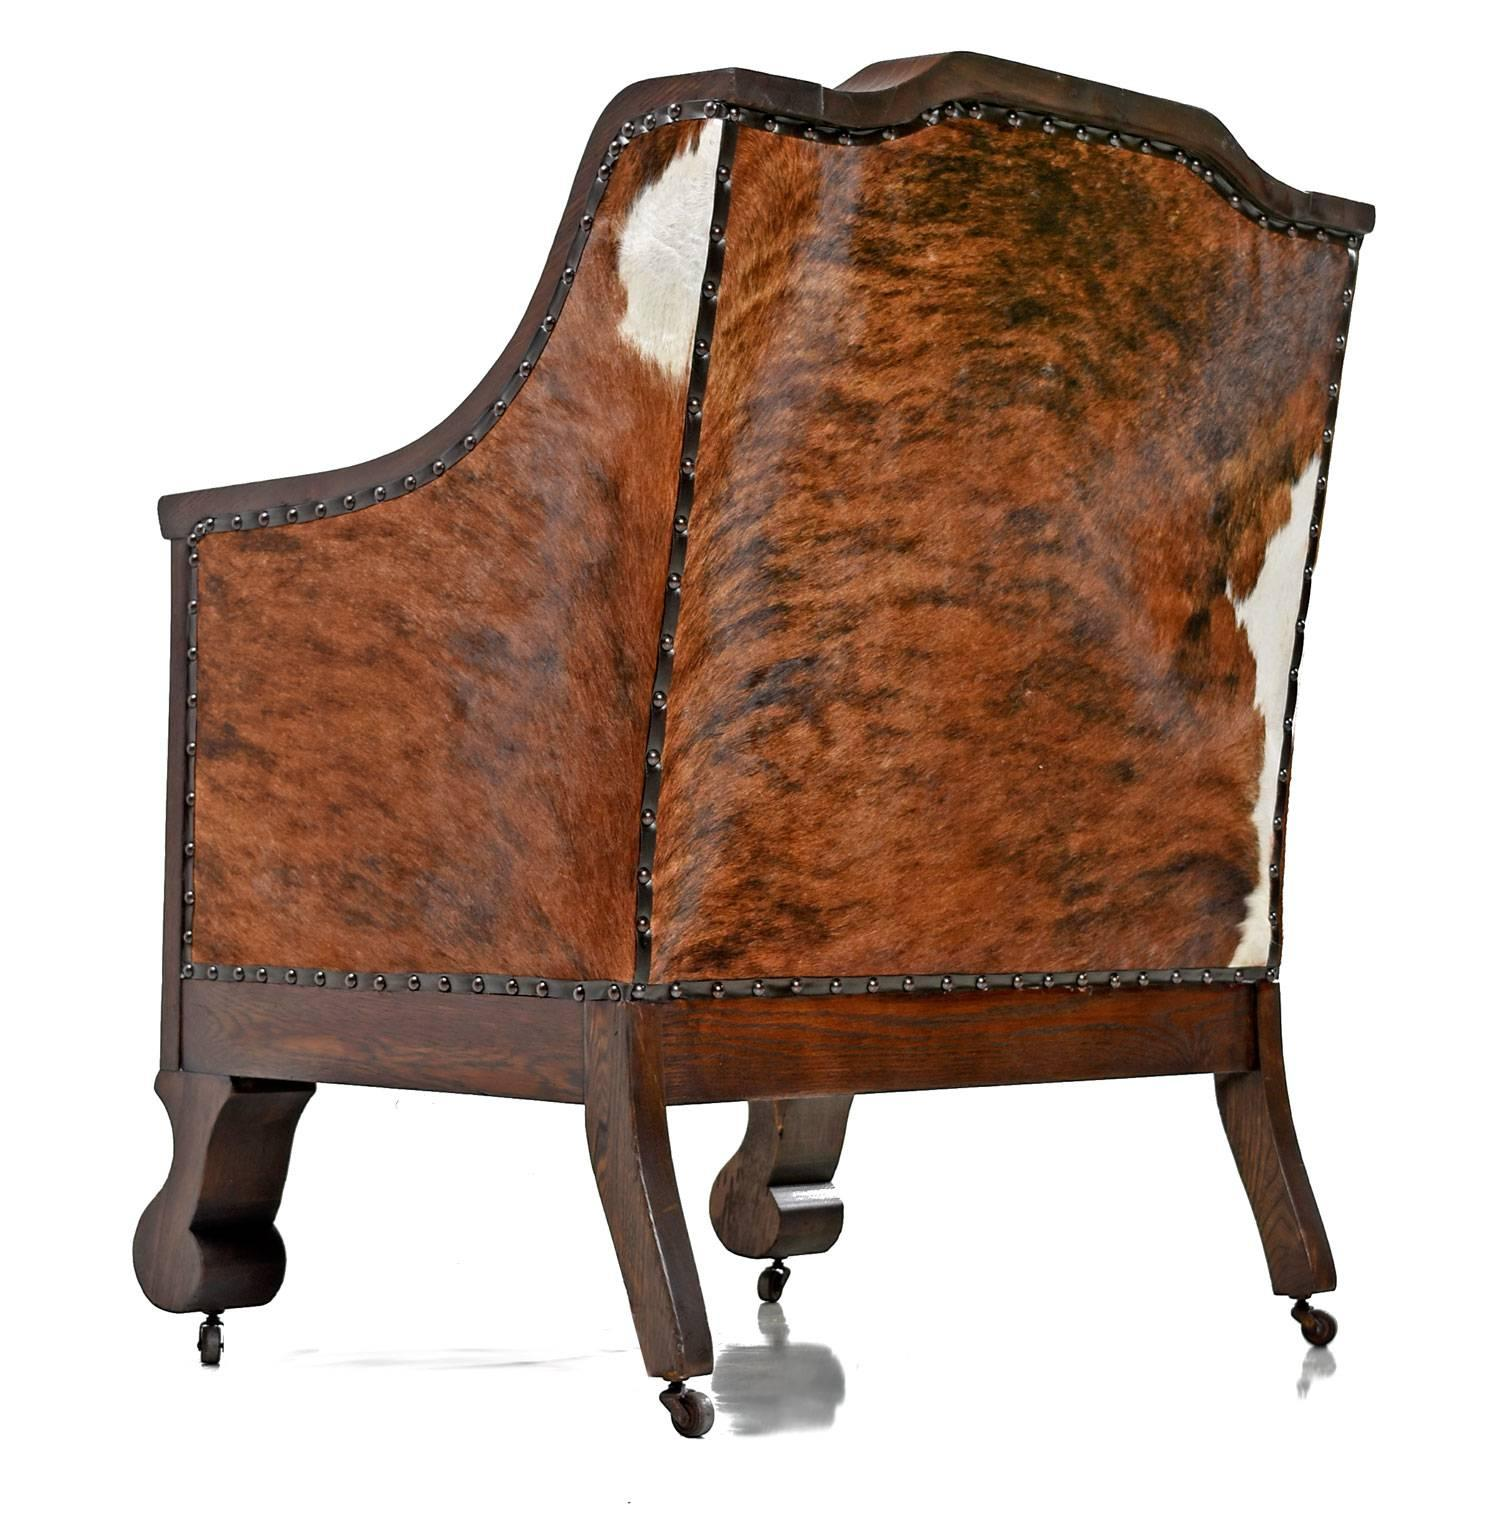 Early 1800s Handmade Empire Style Leather Thrown Chair Re Invented In  Cowhide For Sale At 1stdibs